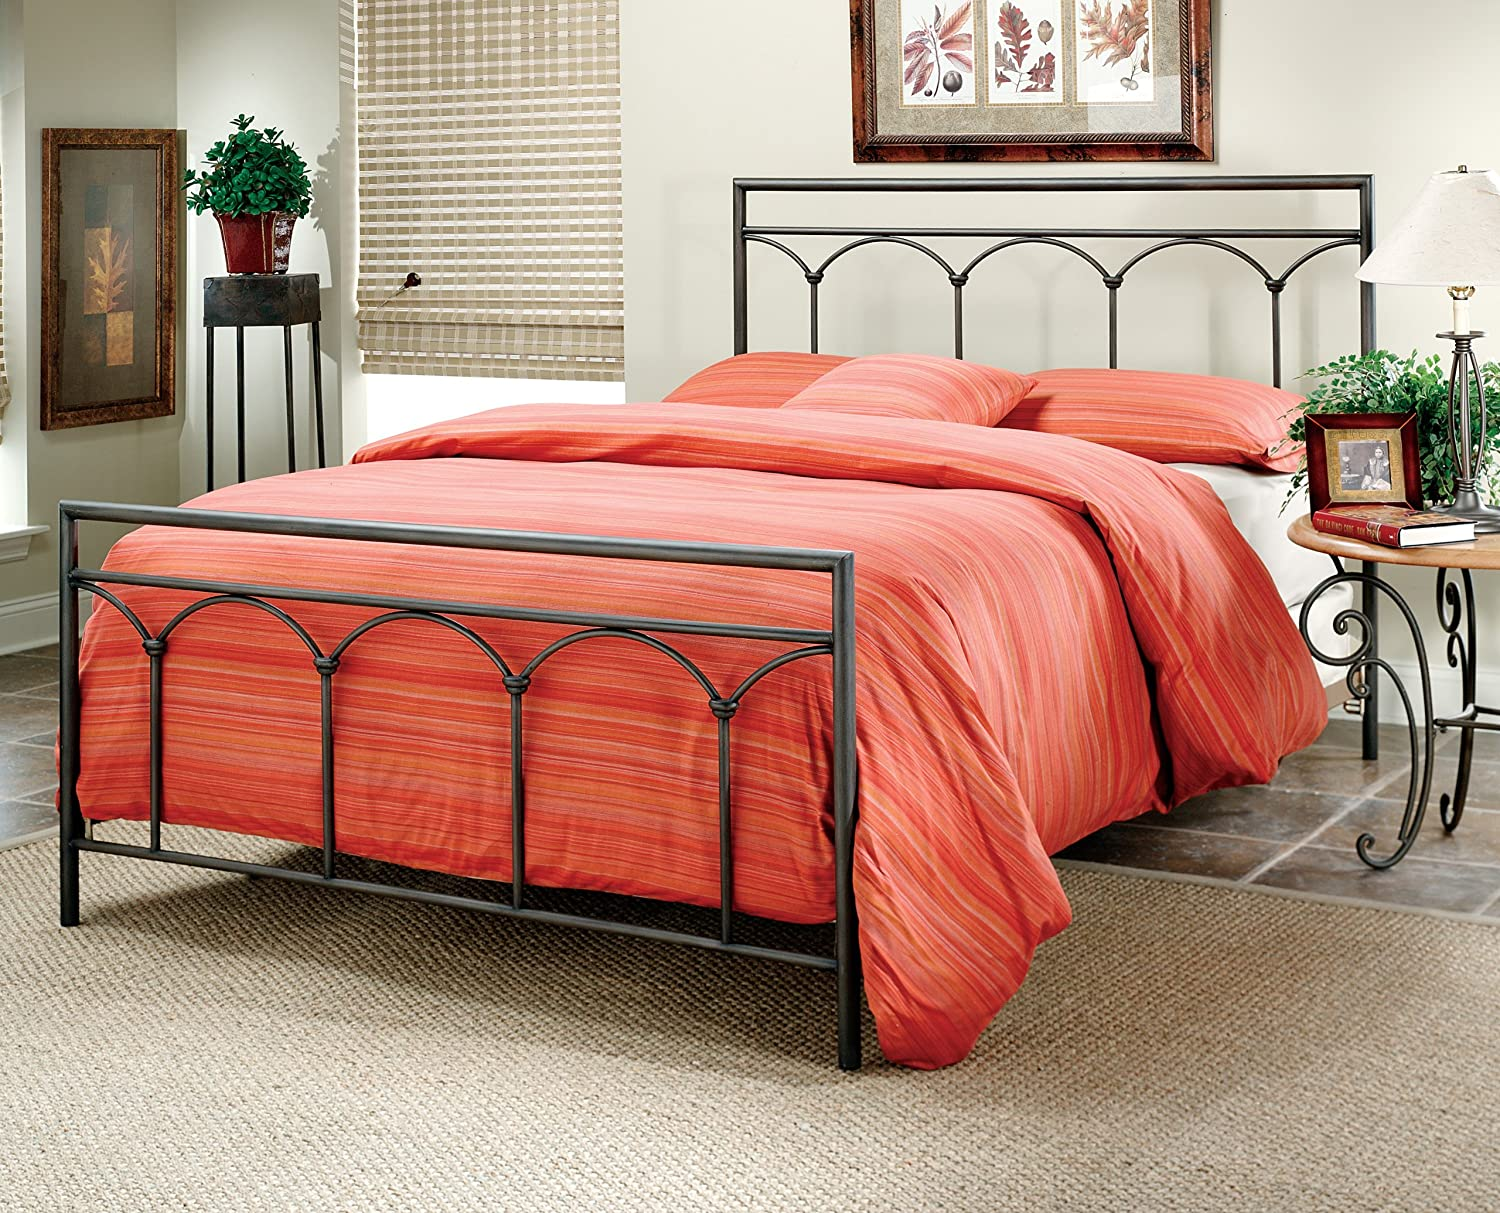 Mckenzie Bedroom Furniture Amazoncom Hillsdale Furniture 1092bq Mckenzie Bed Set Queen